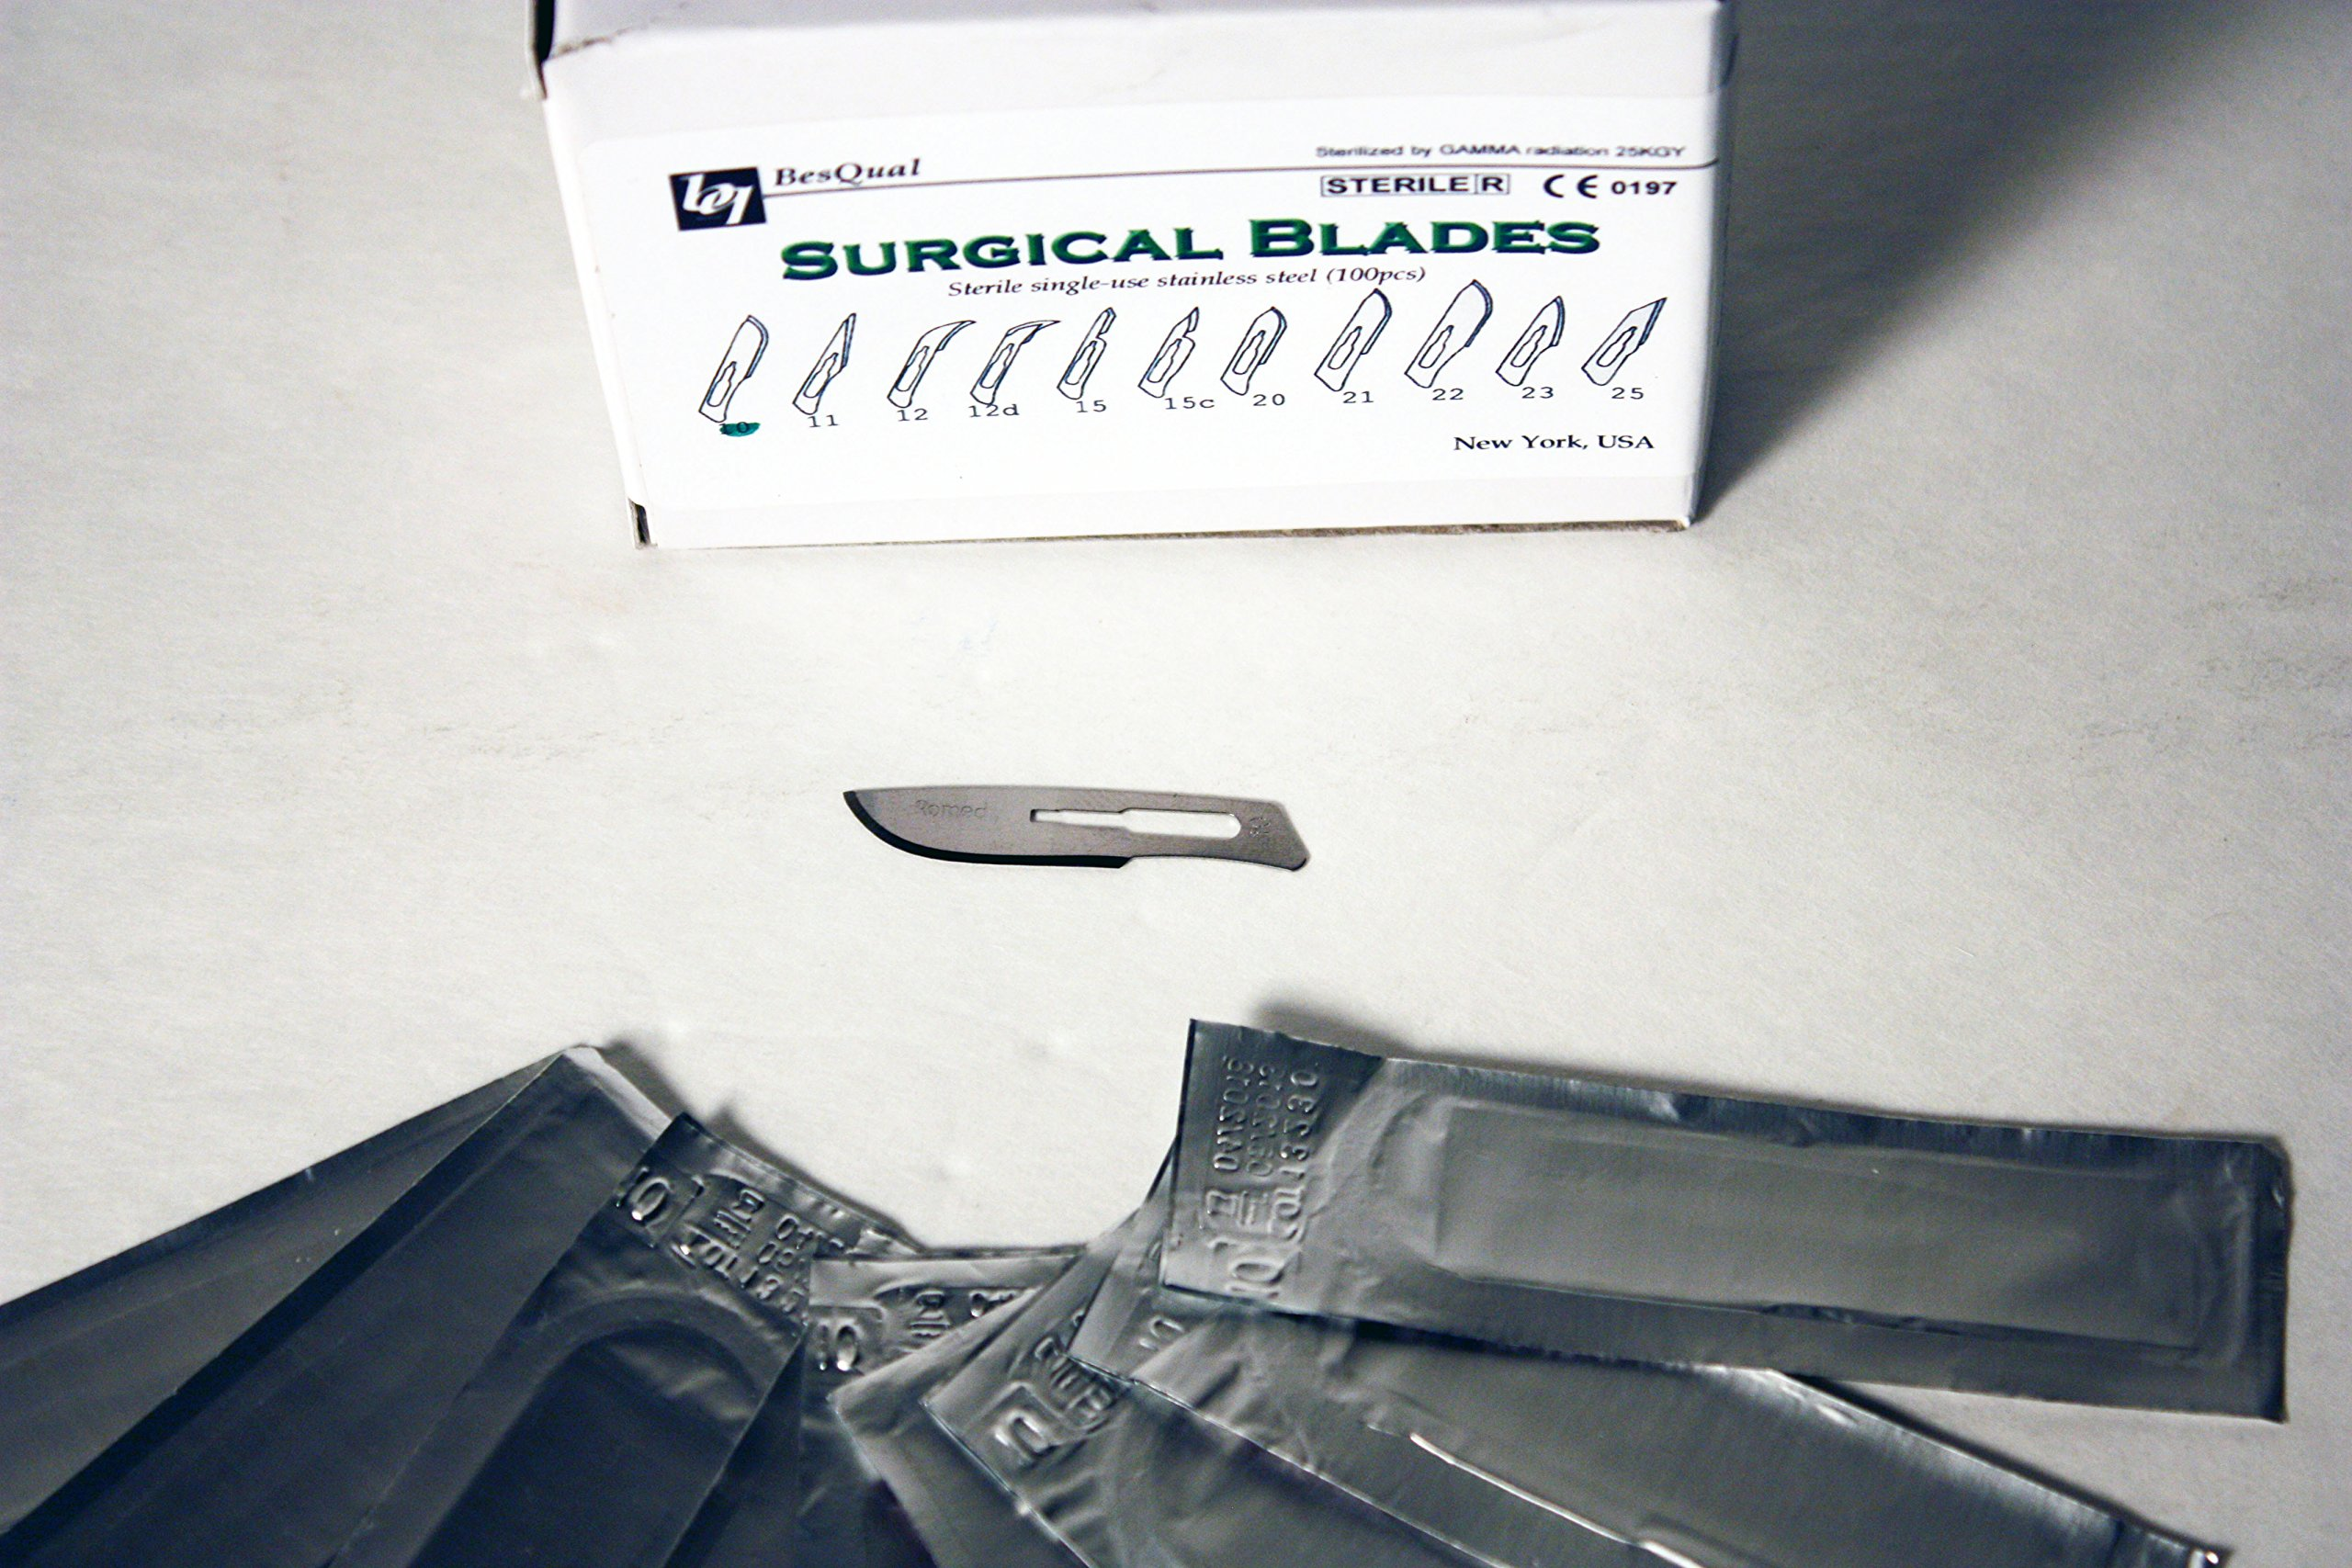 BesQual: 990-10: Premium Quality Surgical Blades Stainless Steel: 100/box